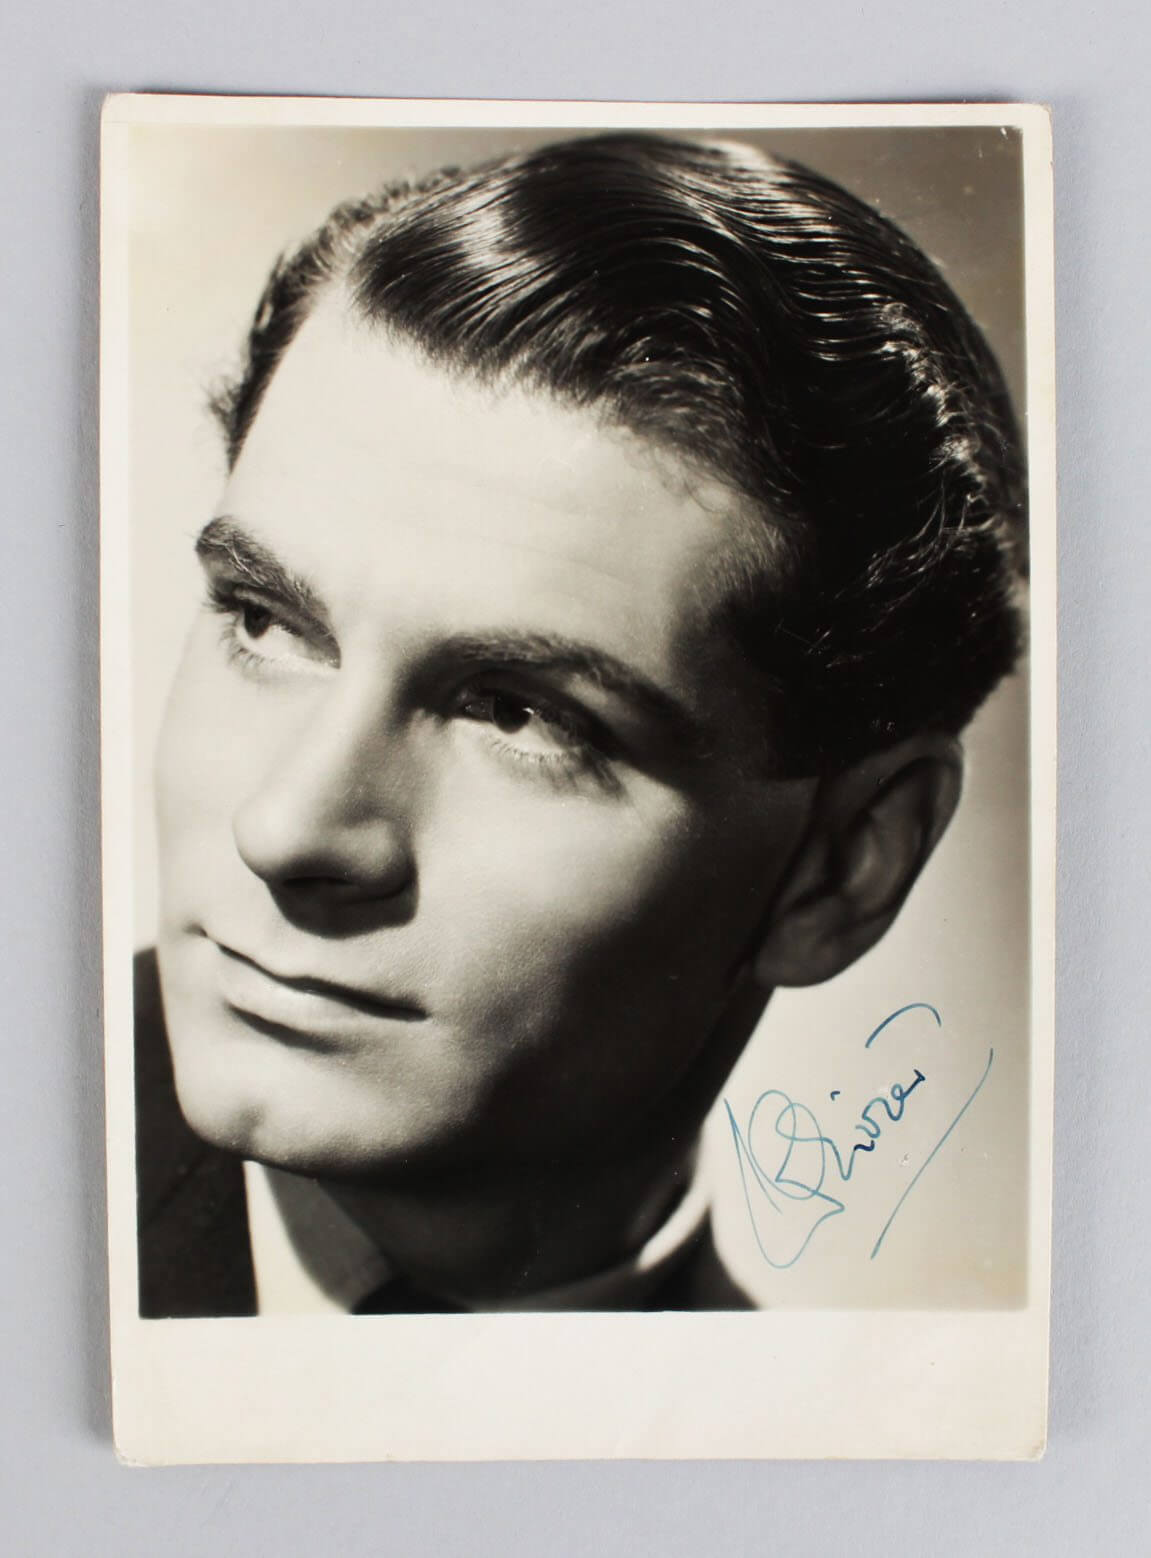 Henry V - Laurence Olivier Signed 5x7 Vintage Photo - COA JSA